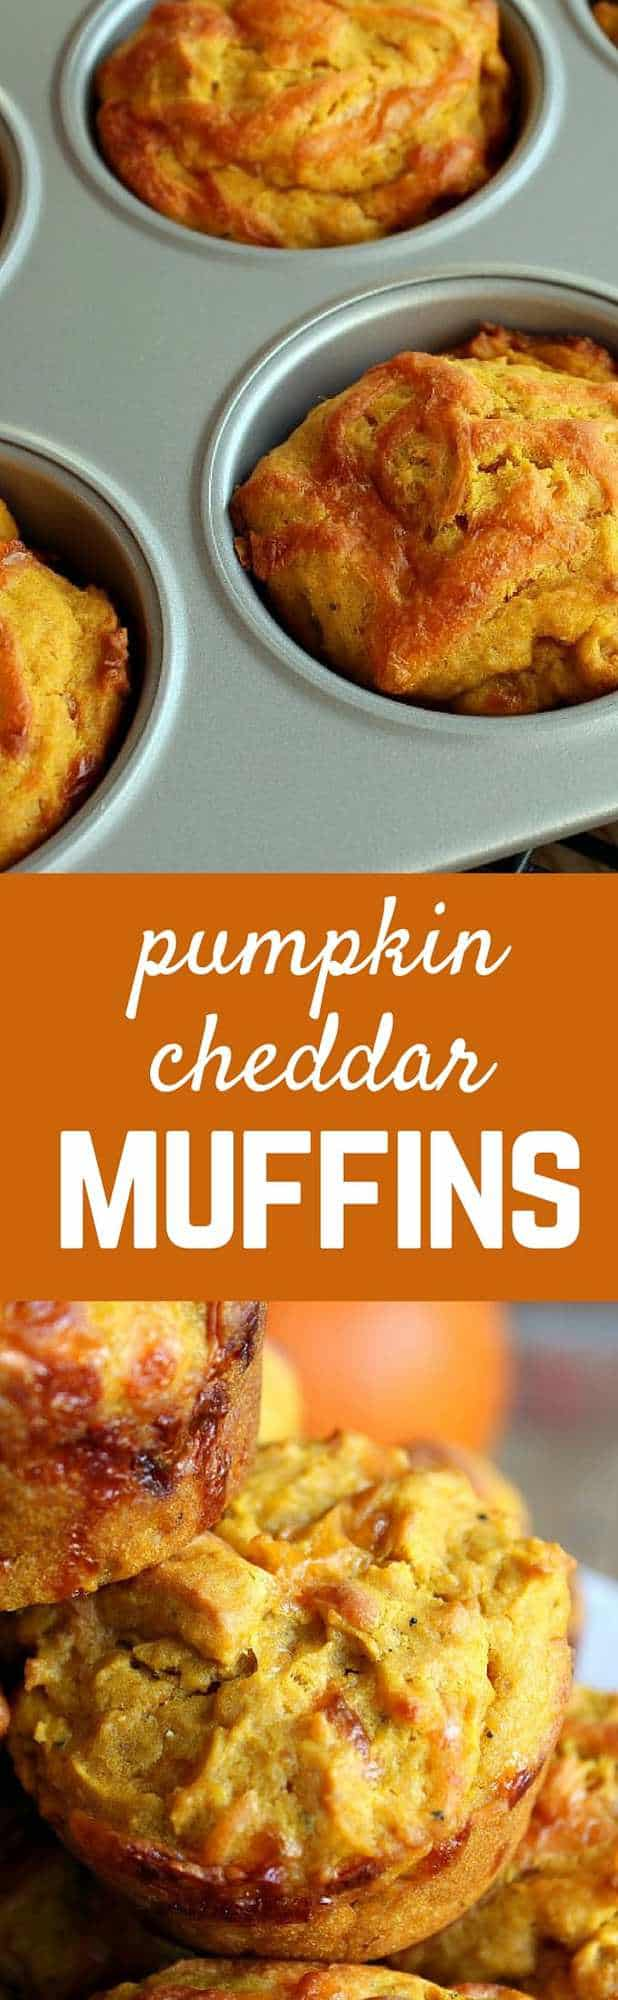 These pumpkin cheddar muffins are unique, surprising, and extremely delicious. They'll be a new fall favorite for breakfast or brunch. Get the recipe on RachelCooks.com.